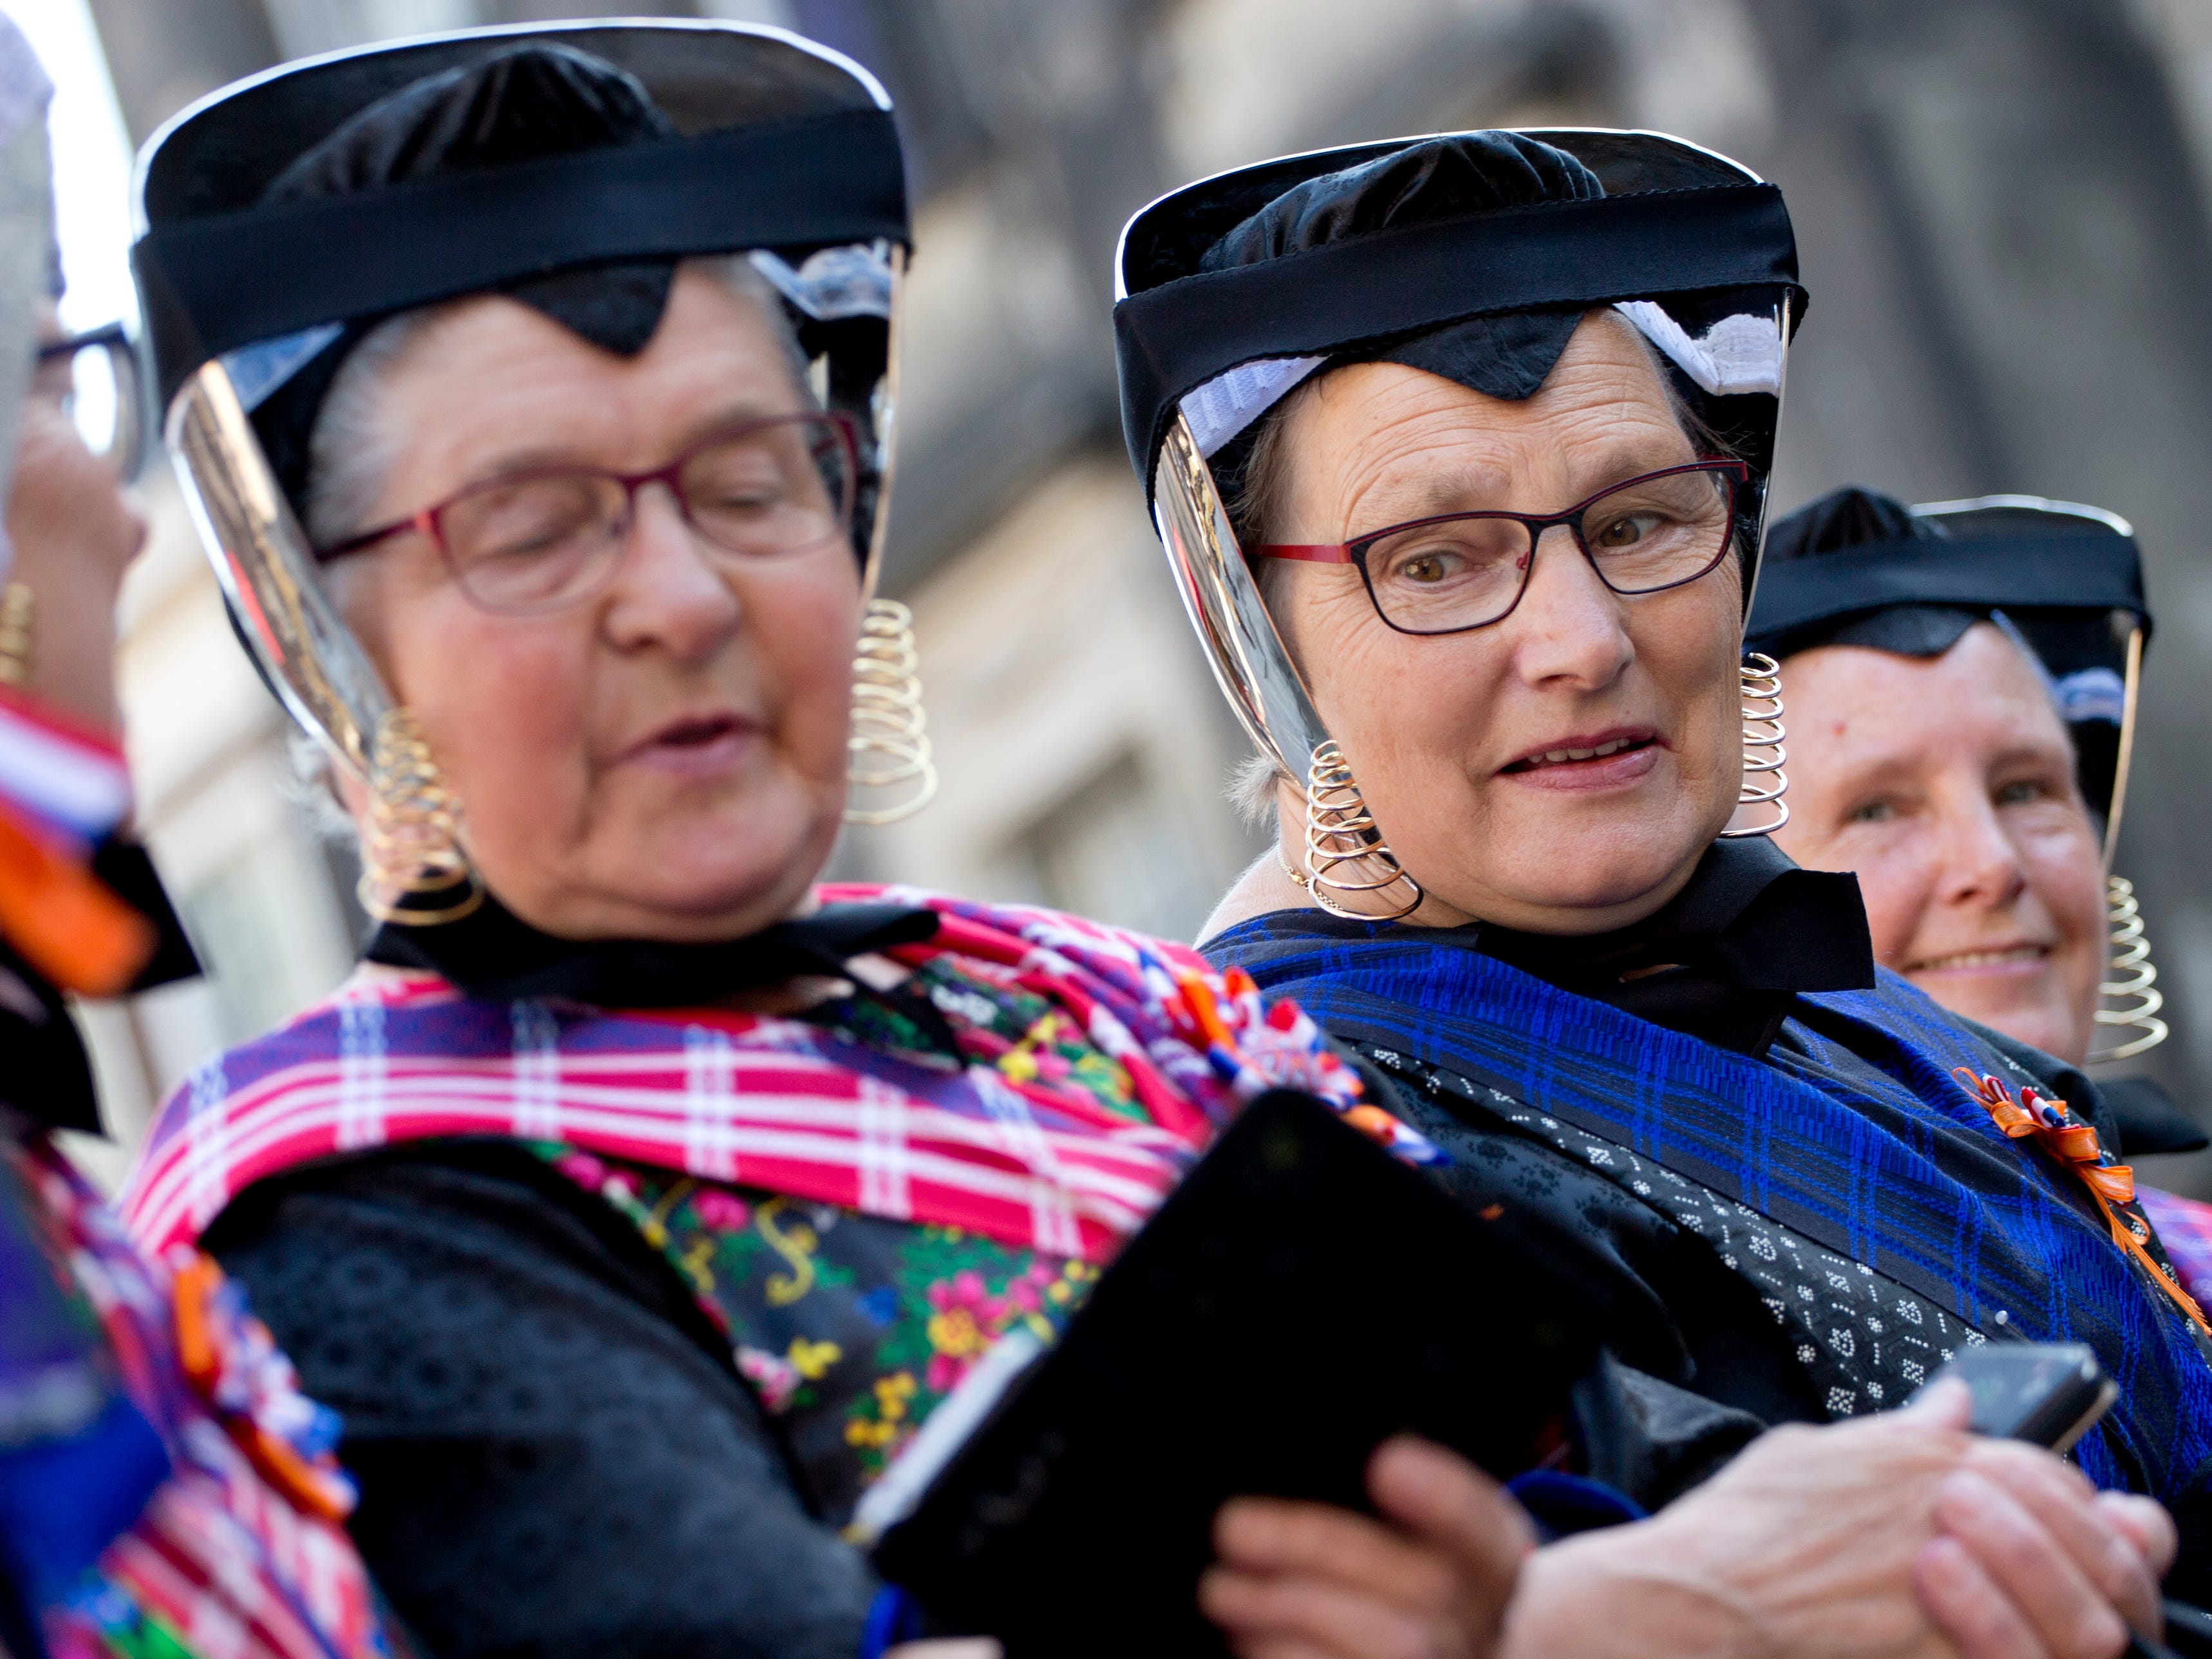 Woman in traditional Dutch clothing from the village of Staphorst look at their smart phones as they wait for Dutch King Willem-Alexander and Queen Maxima's arrival in a horse-drawn carriage at the Knight's Hall in The Hague, Netherlands, Tuesday, Sept. 18, 2018, for a ceremony marking the opening of the parliamentary year with a speech by King Willem-Alexander outlining the government's budget plans for the year ahead.